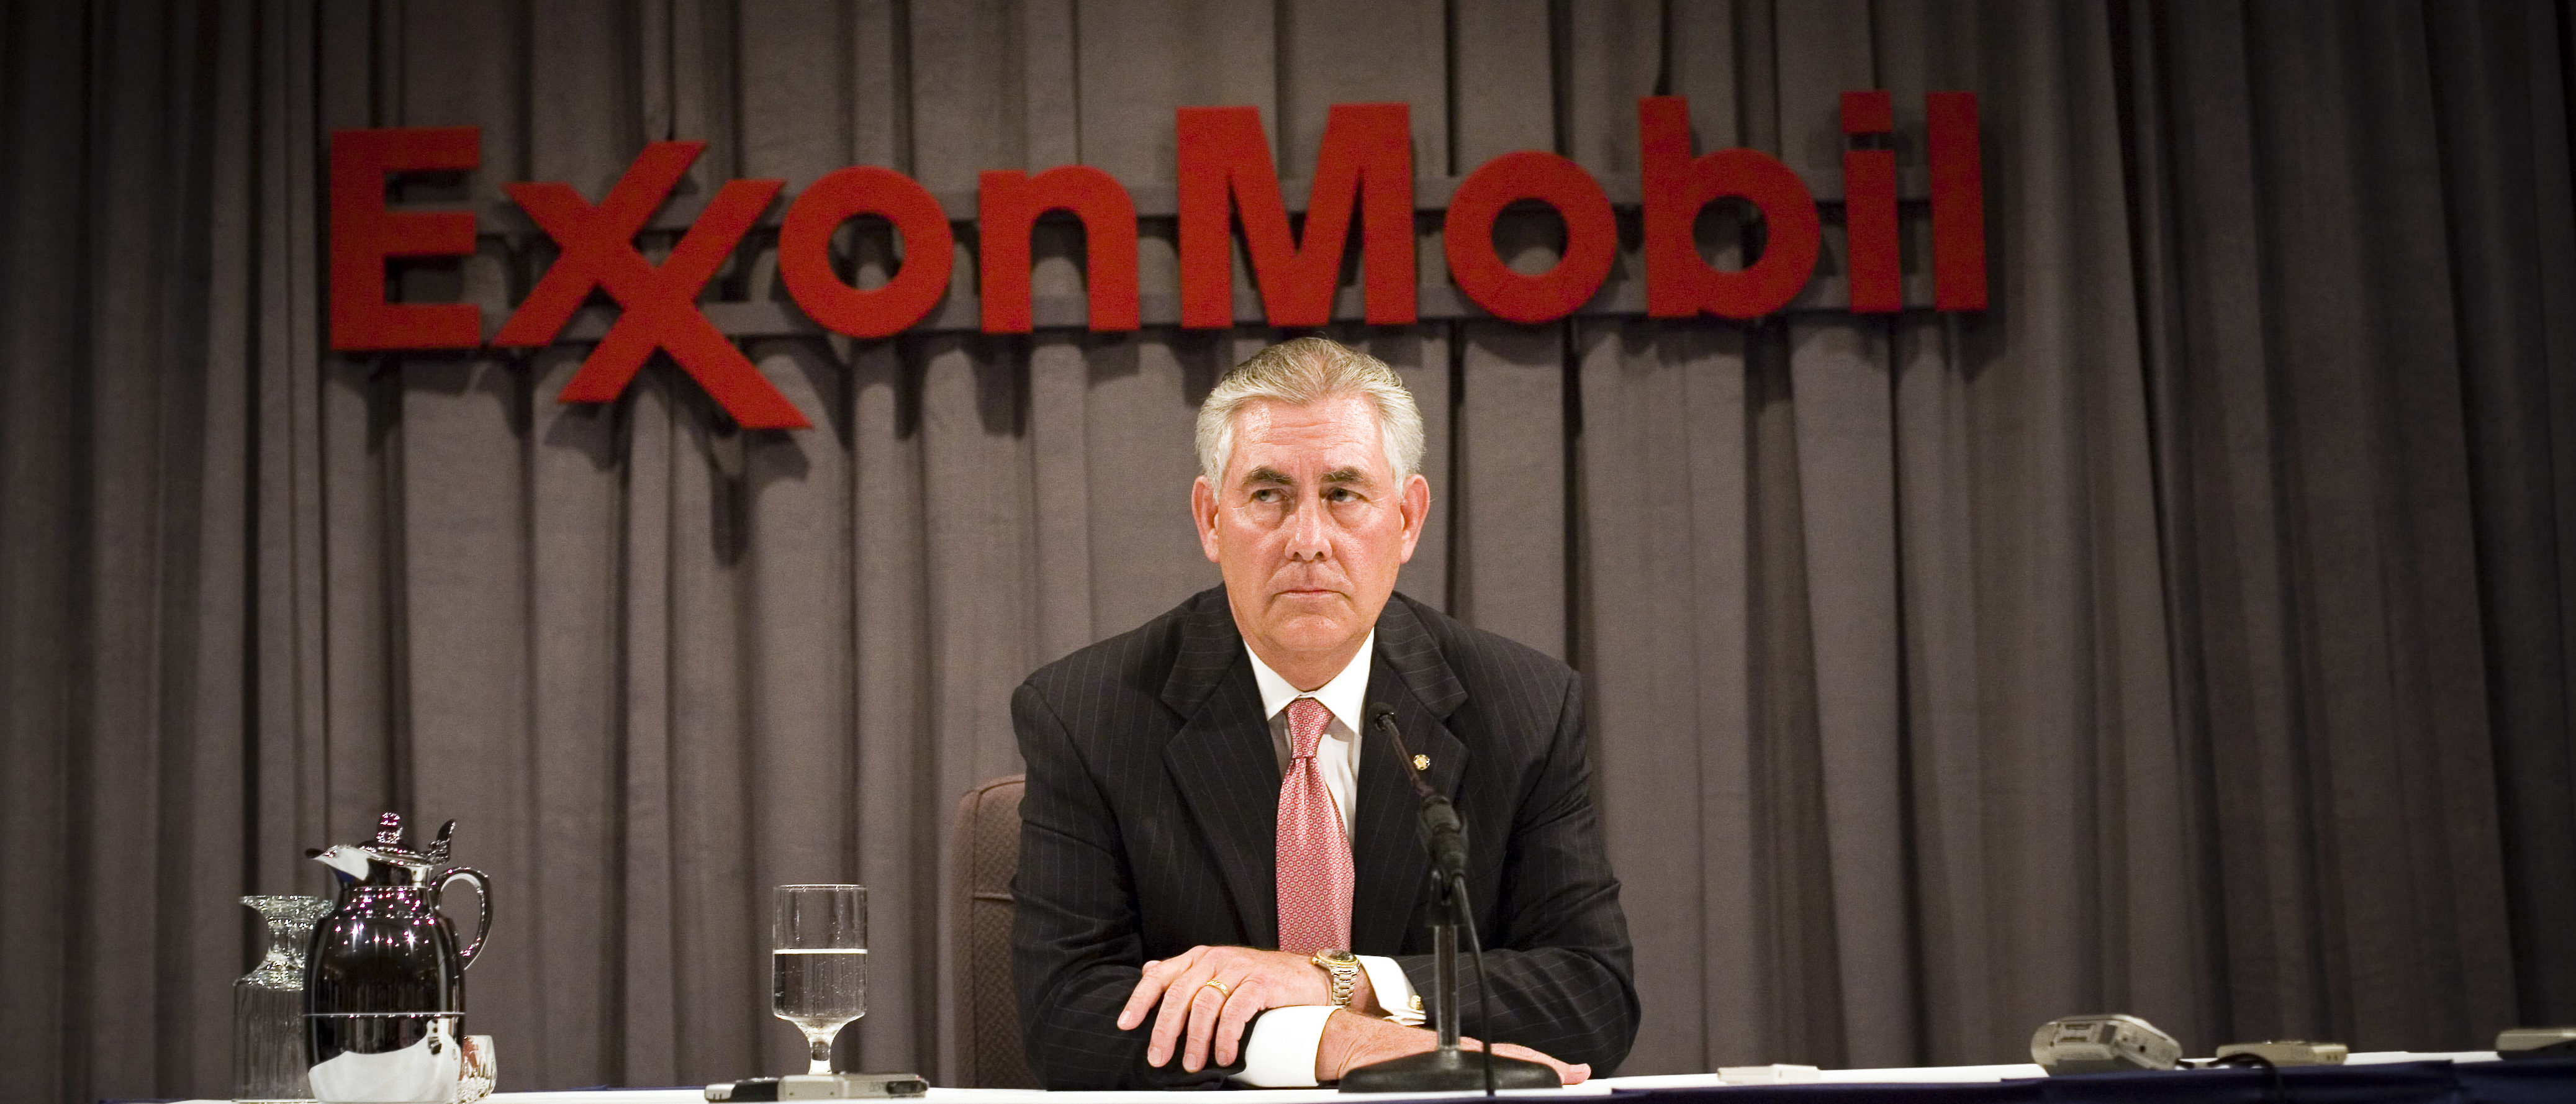 ExxonMobil Chairman Rex Tillerson speaks at ExxonMobil annual shareholders meeting in 2008 (Photo by Brian Harkin/Getty Images)